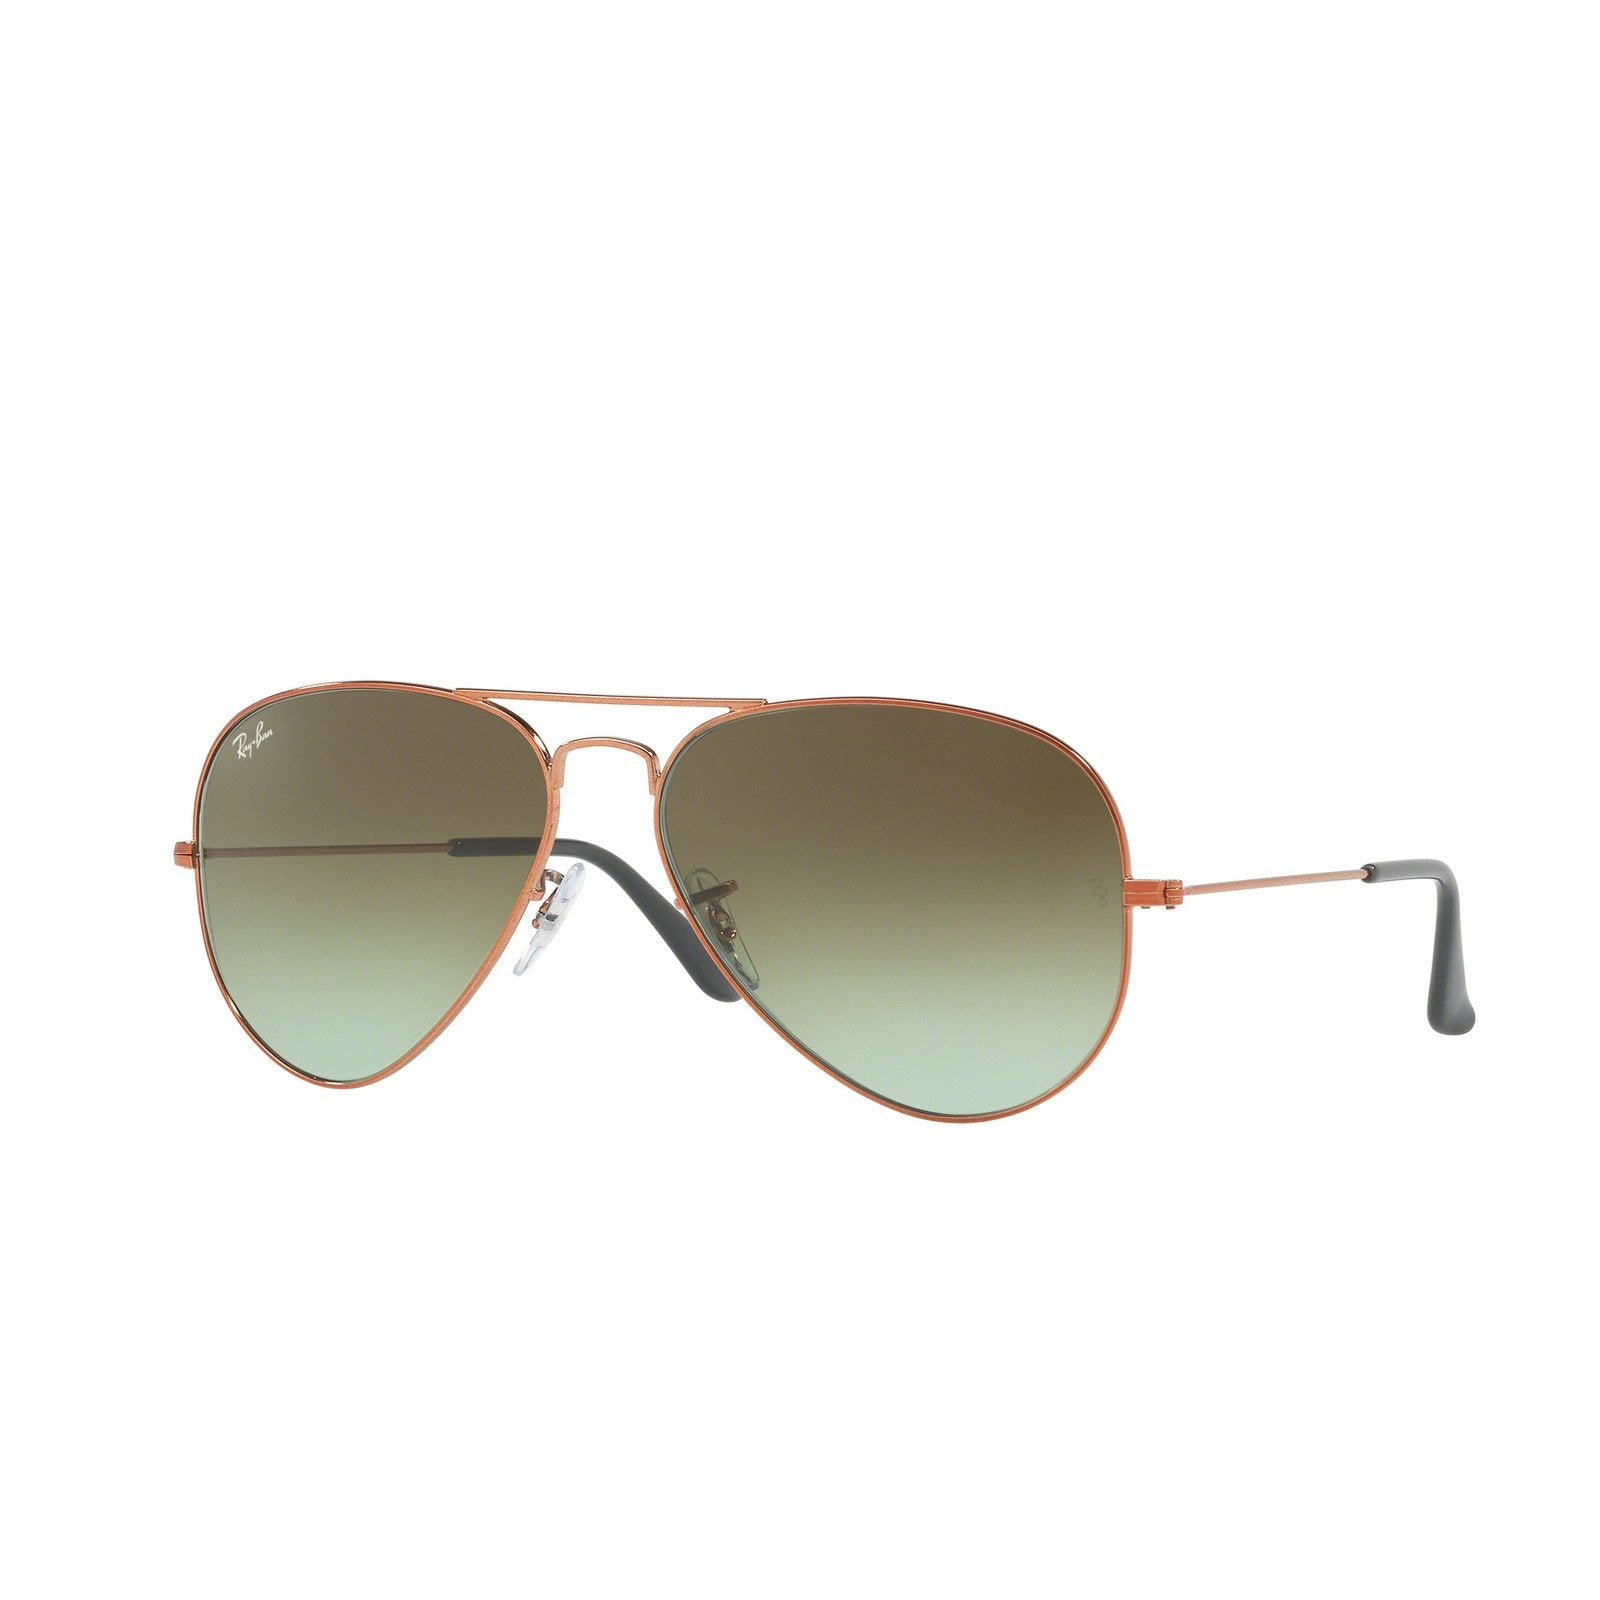 Ray-Ban RB3025 9002A6 Sunglasses